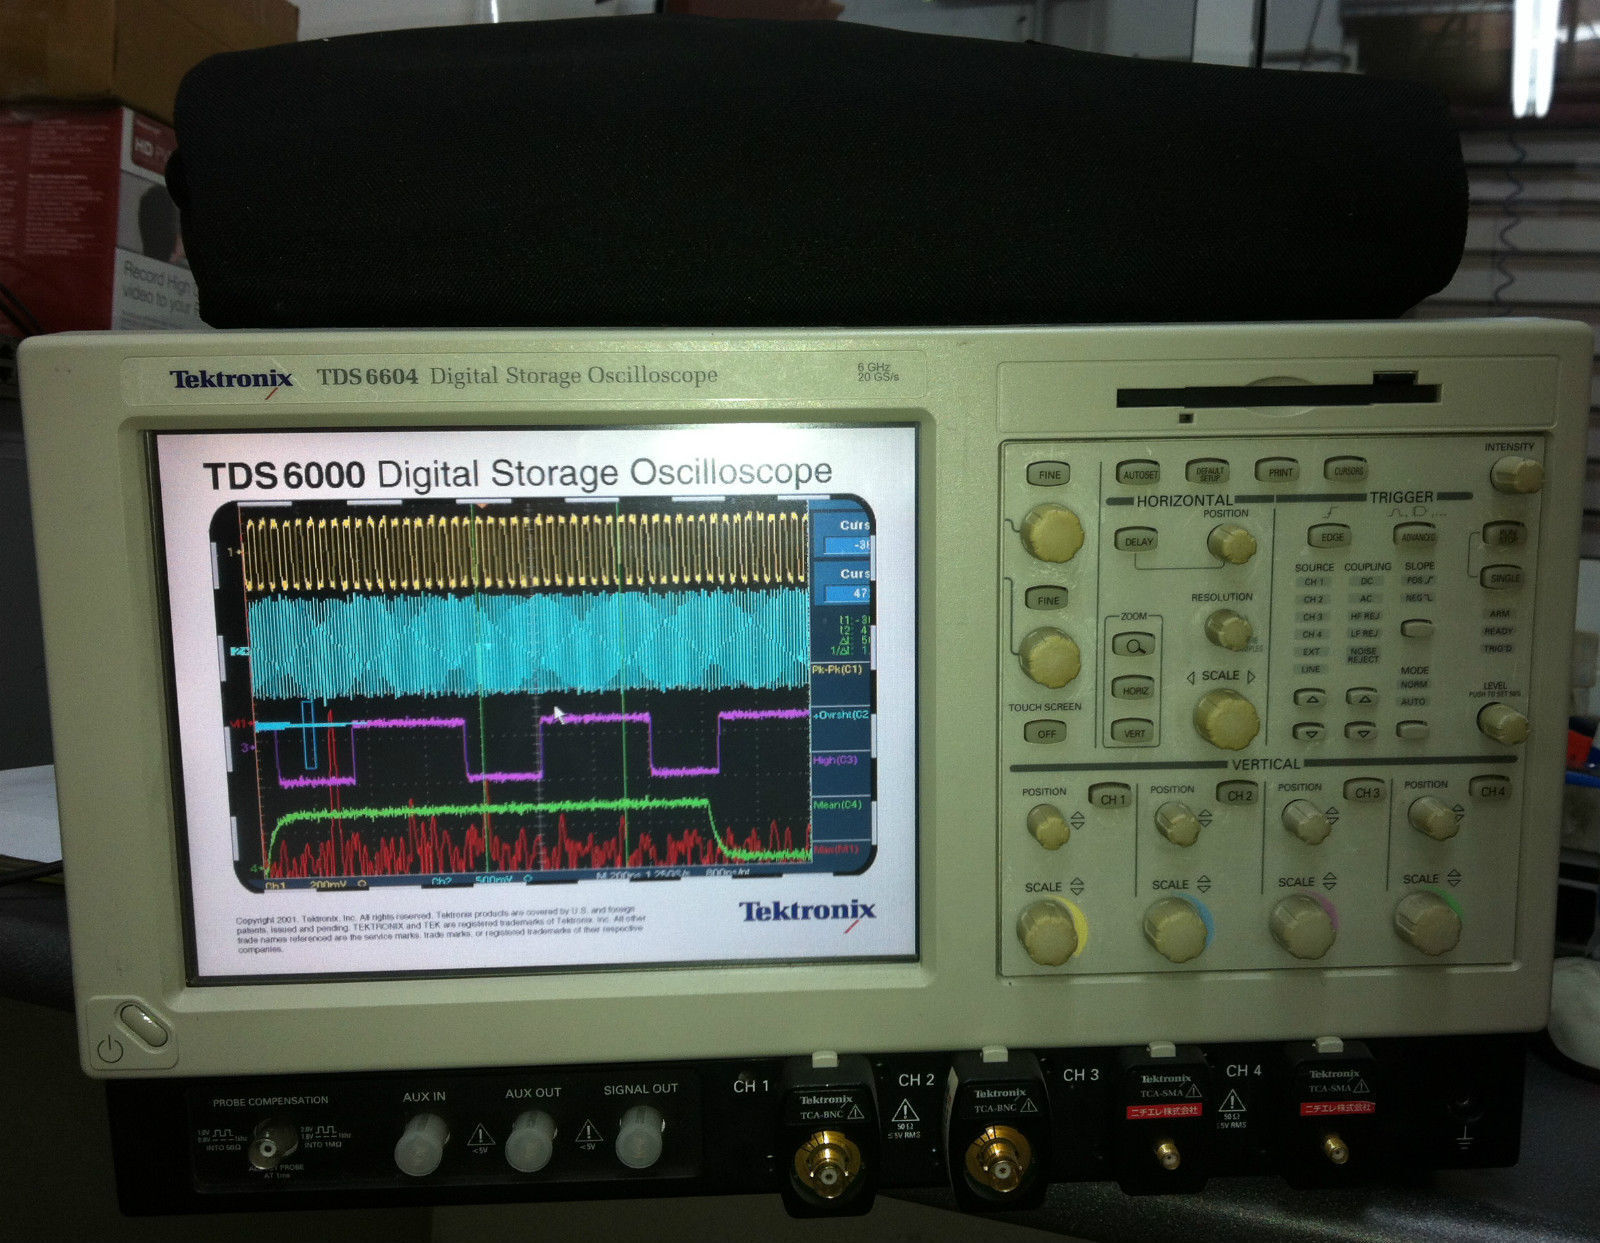 Tektronix TDS6604 Digital Oscilloscope